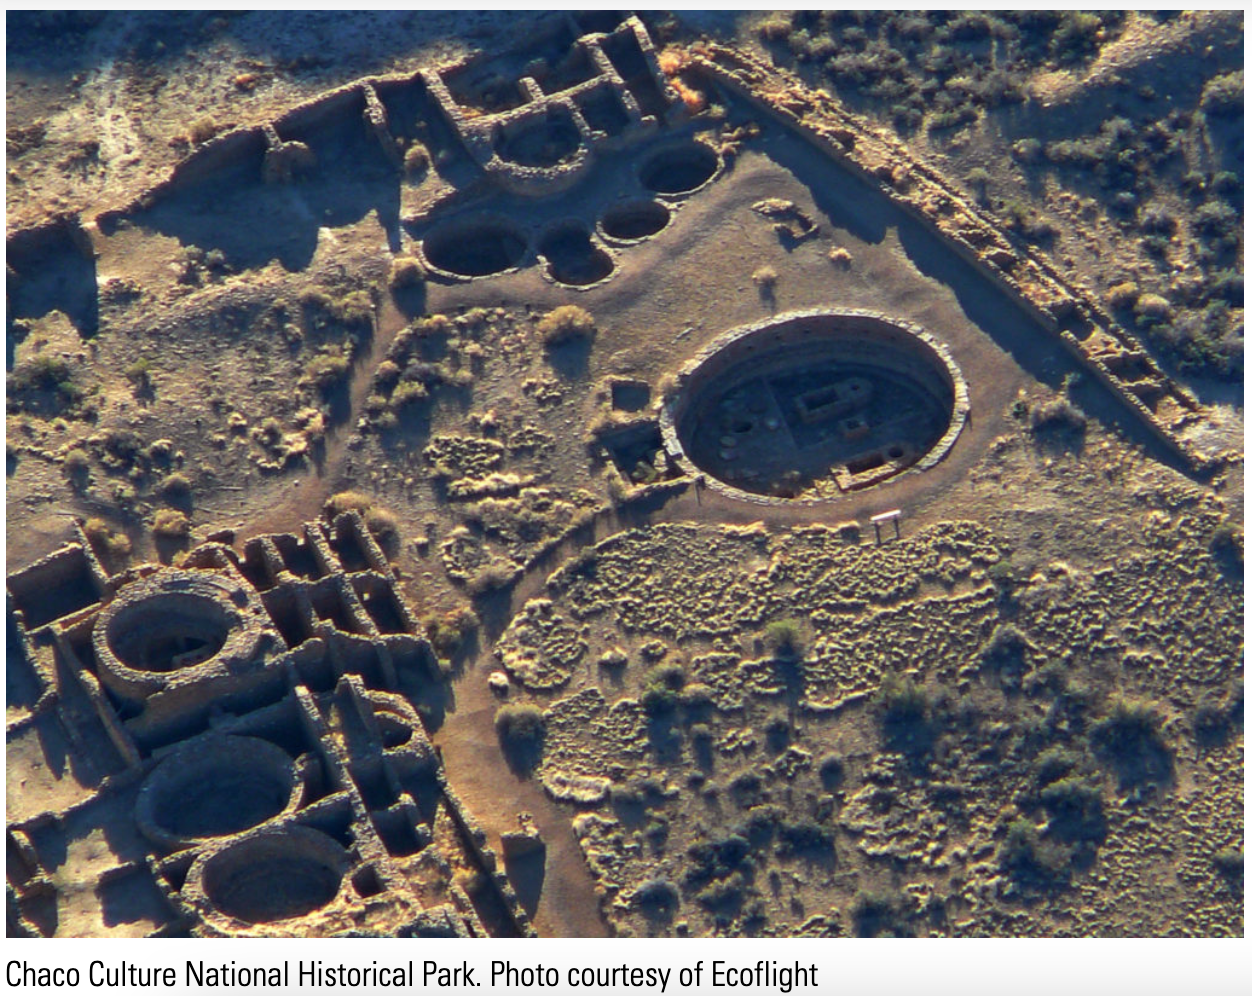 Aerial View of Chaco Culture National Historic Park and World Heritage Site